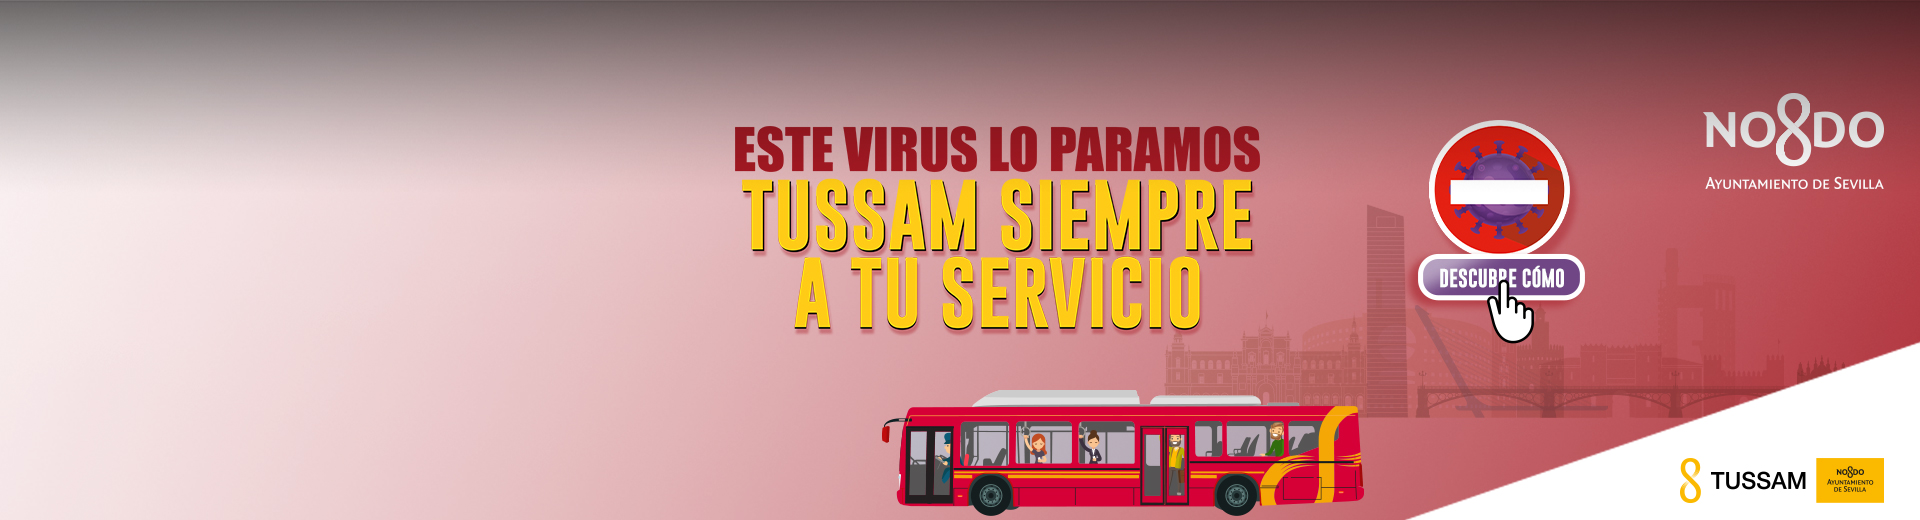 https://www.tussam.es/sites/default/files/revslider/image/Slider_1920_Alto520_v2_0.jpg